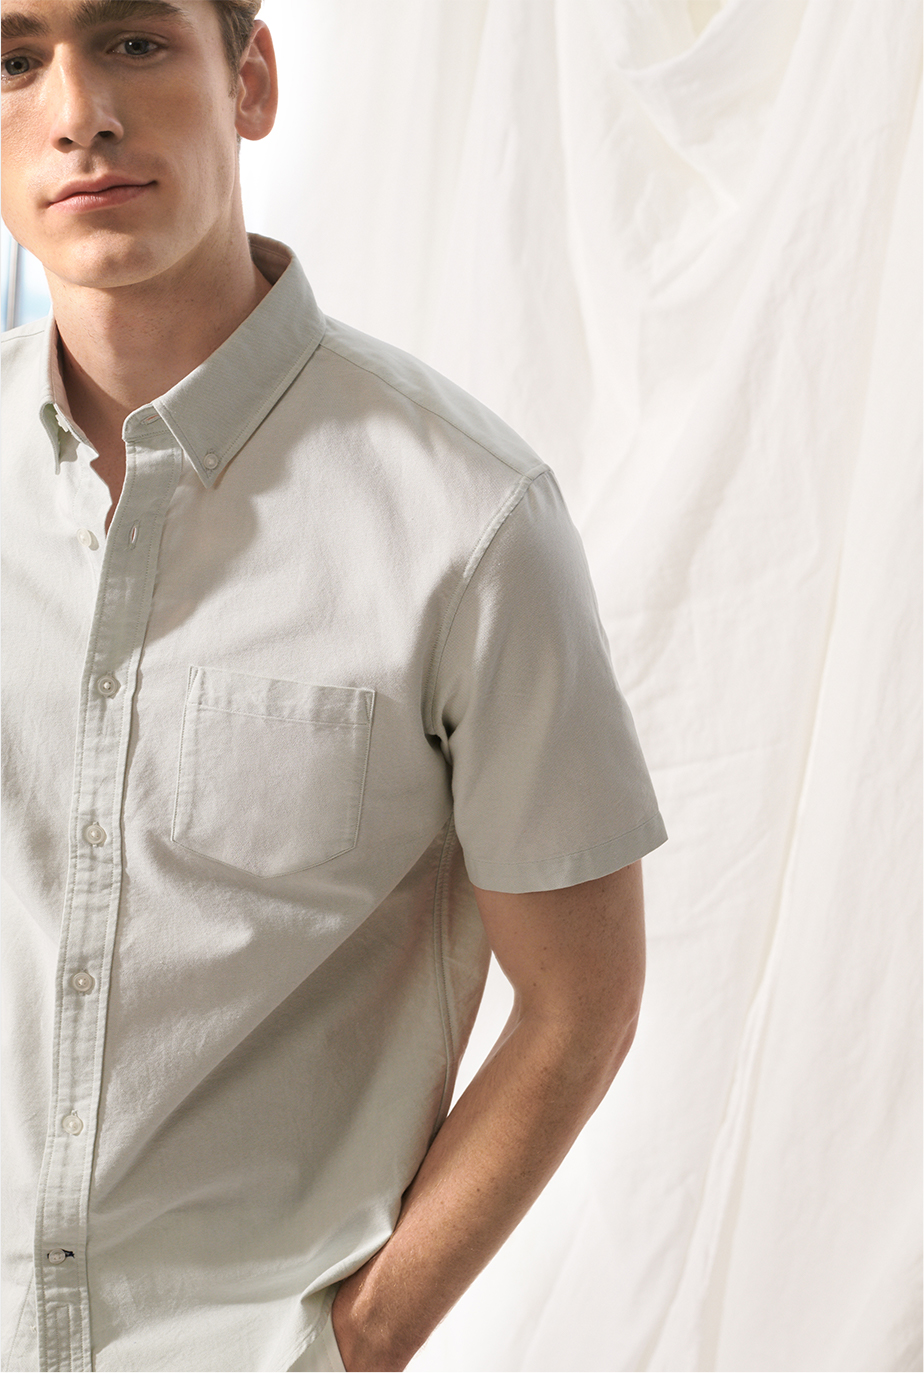 Man in slim fit button-up short sleeve shirt